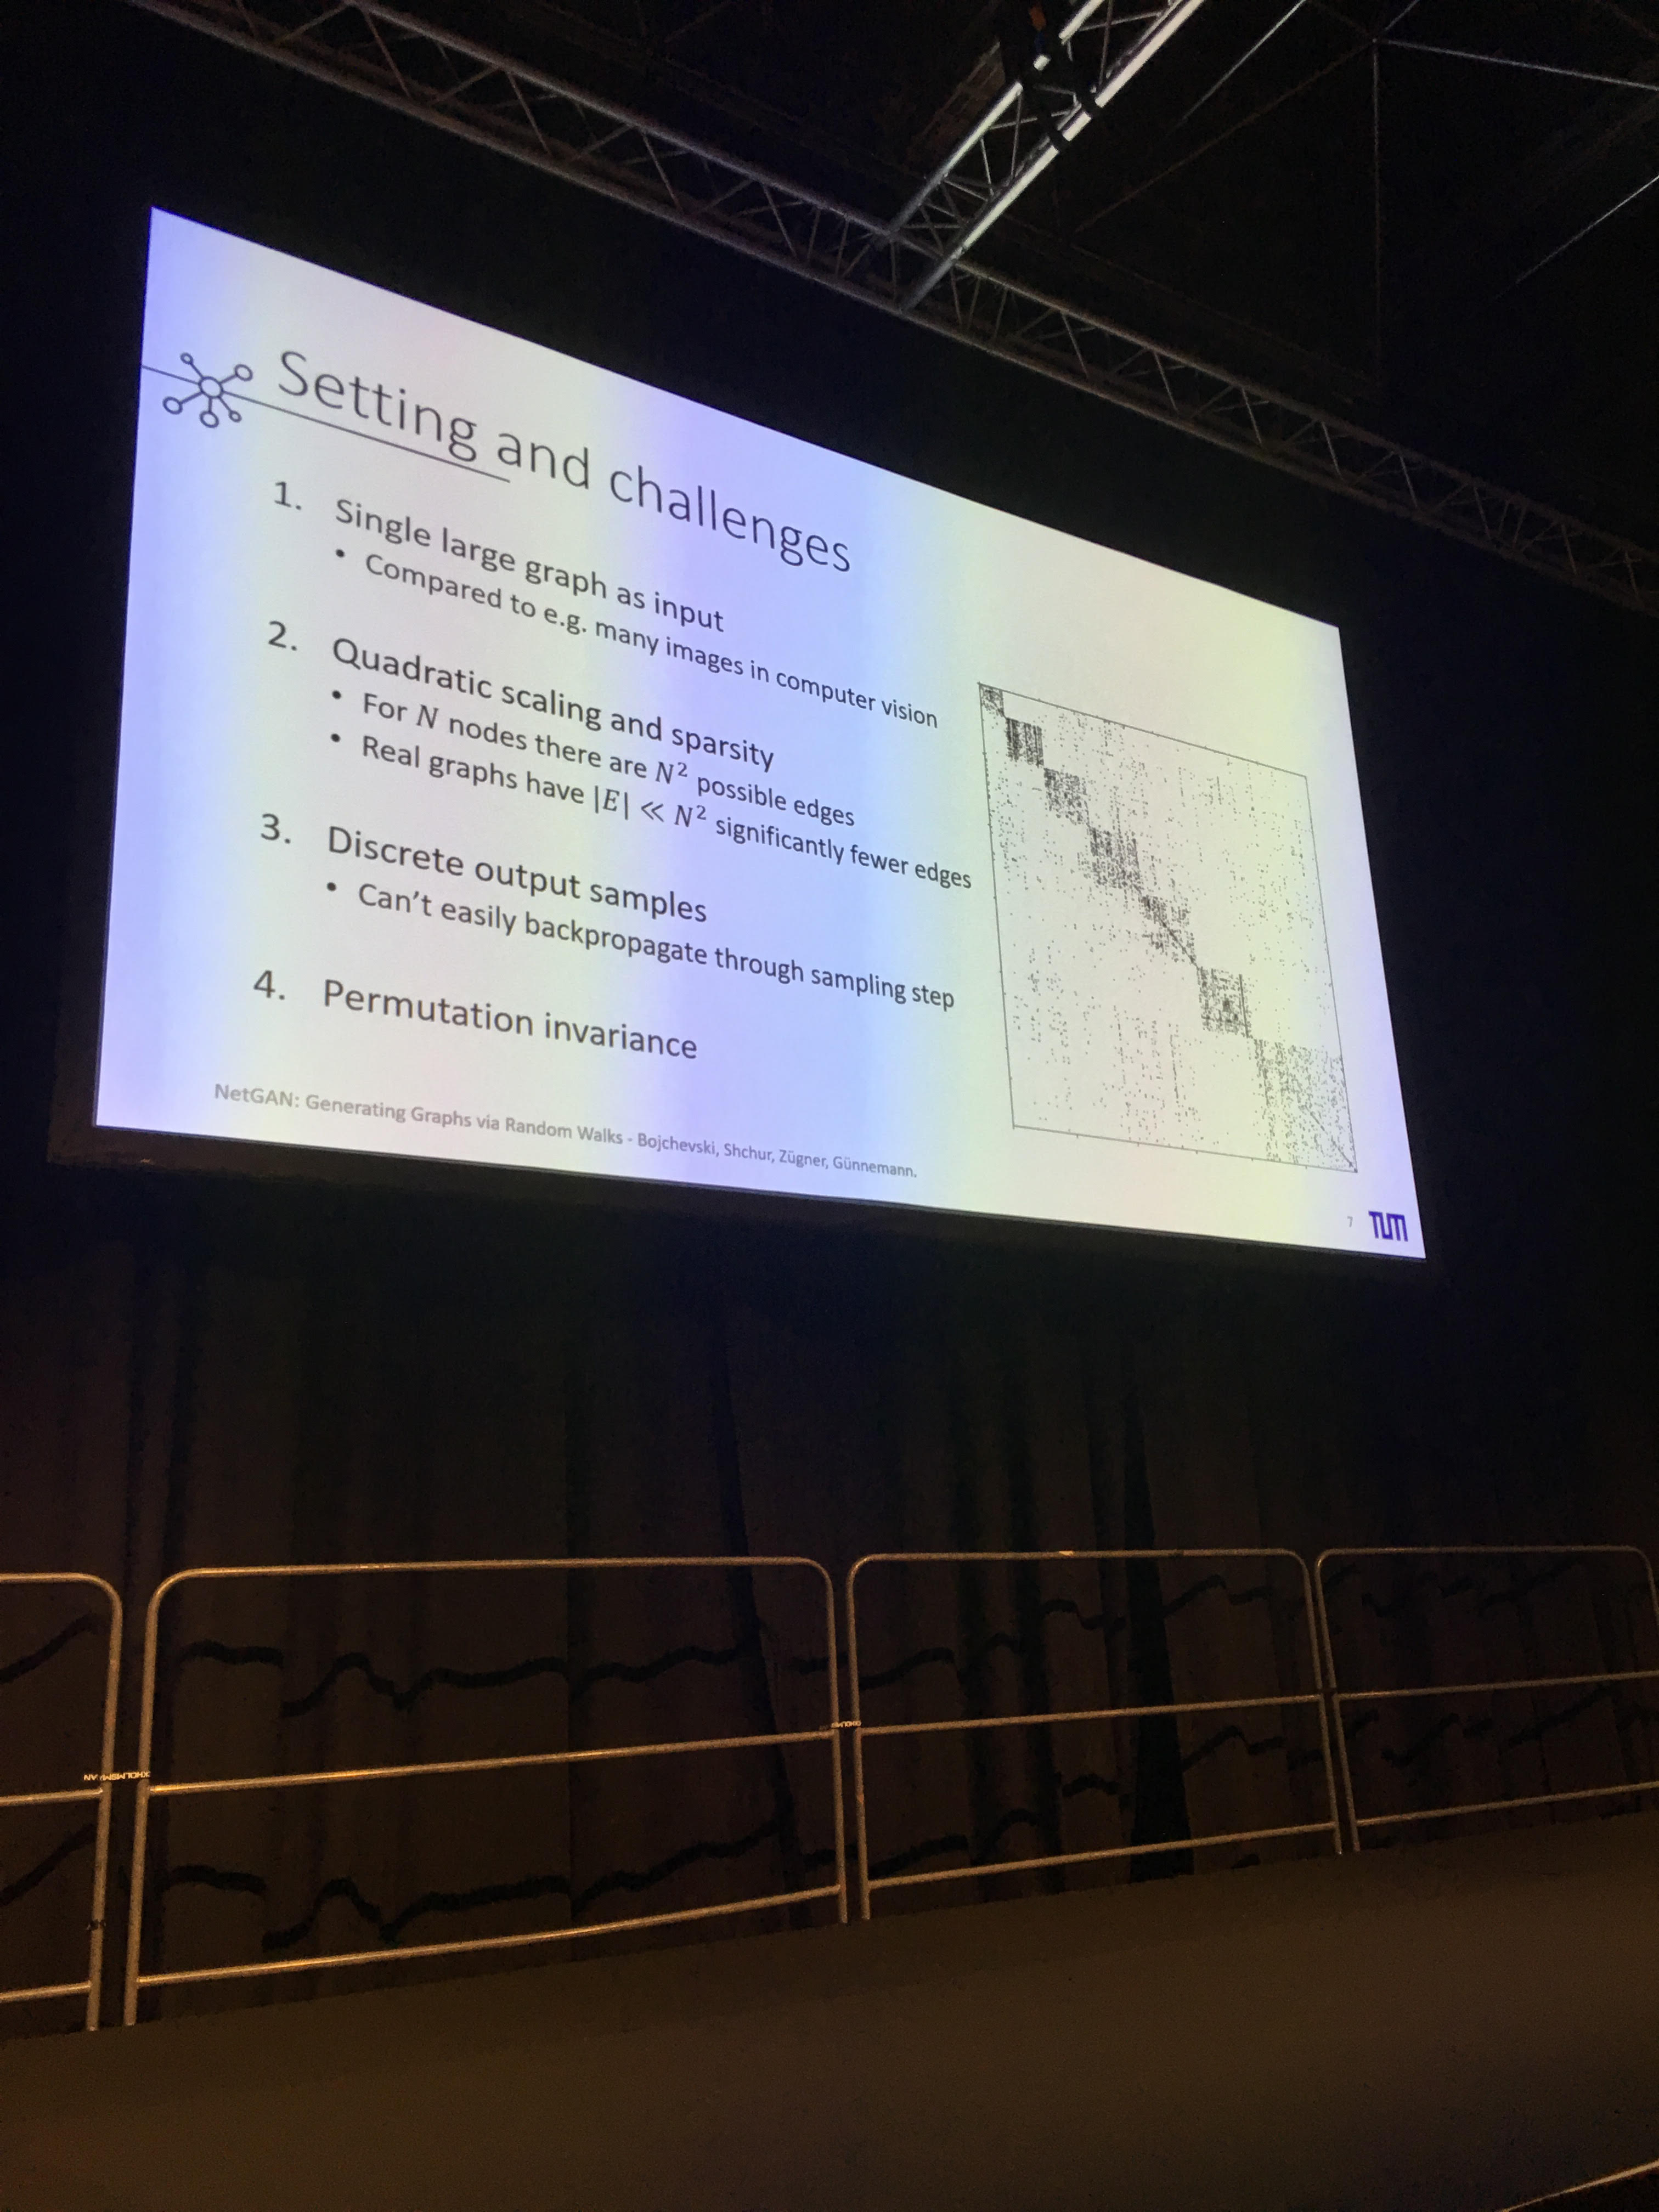 ICML 2018] Day 2 - Representation Learning, Networks and